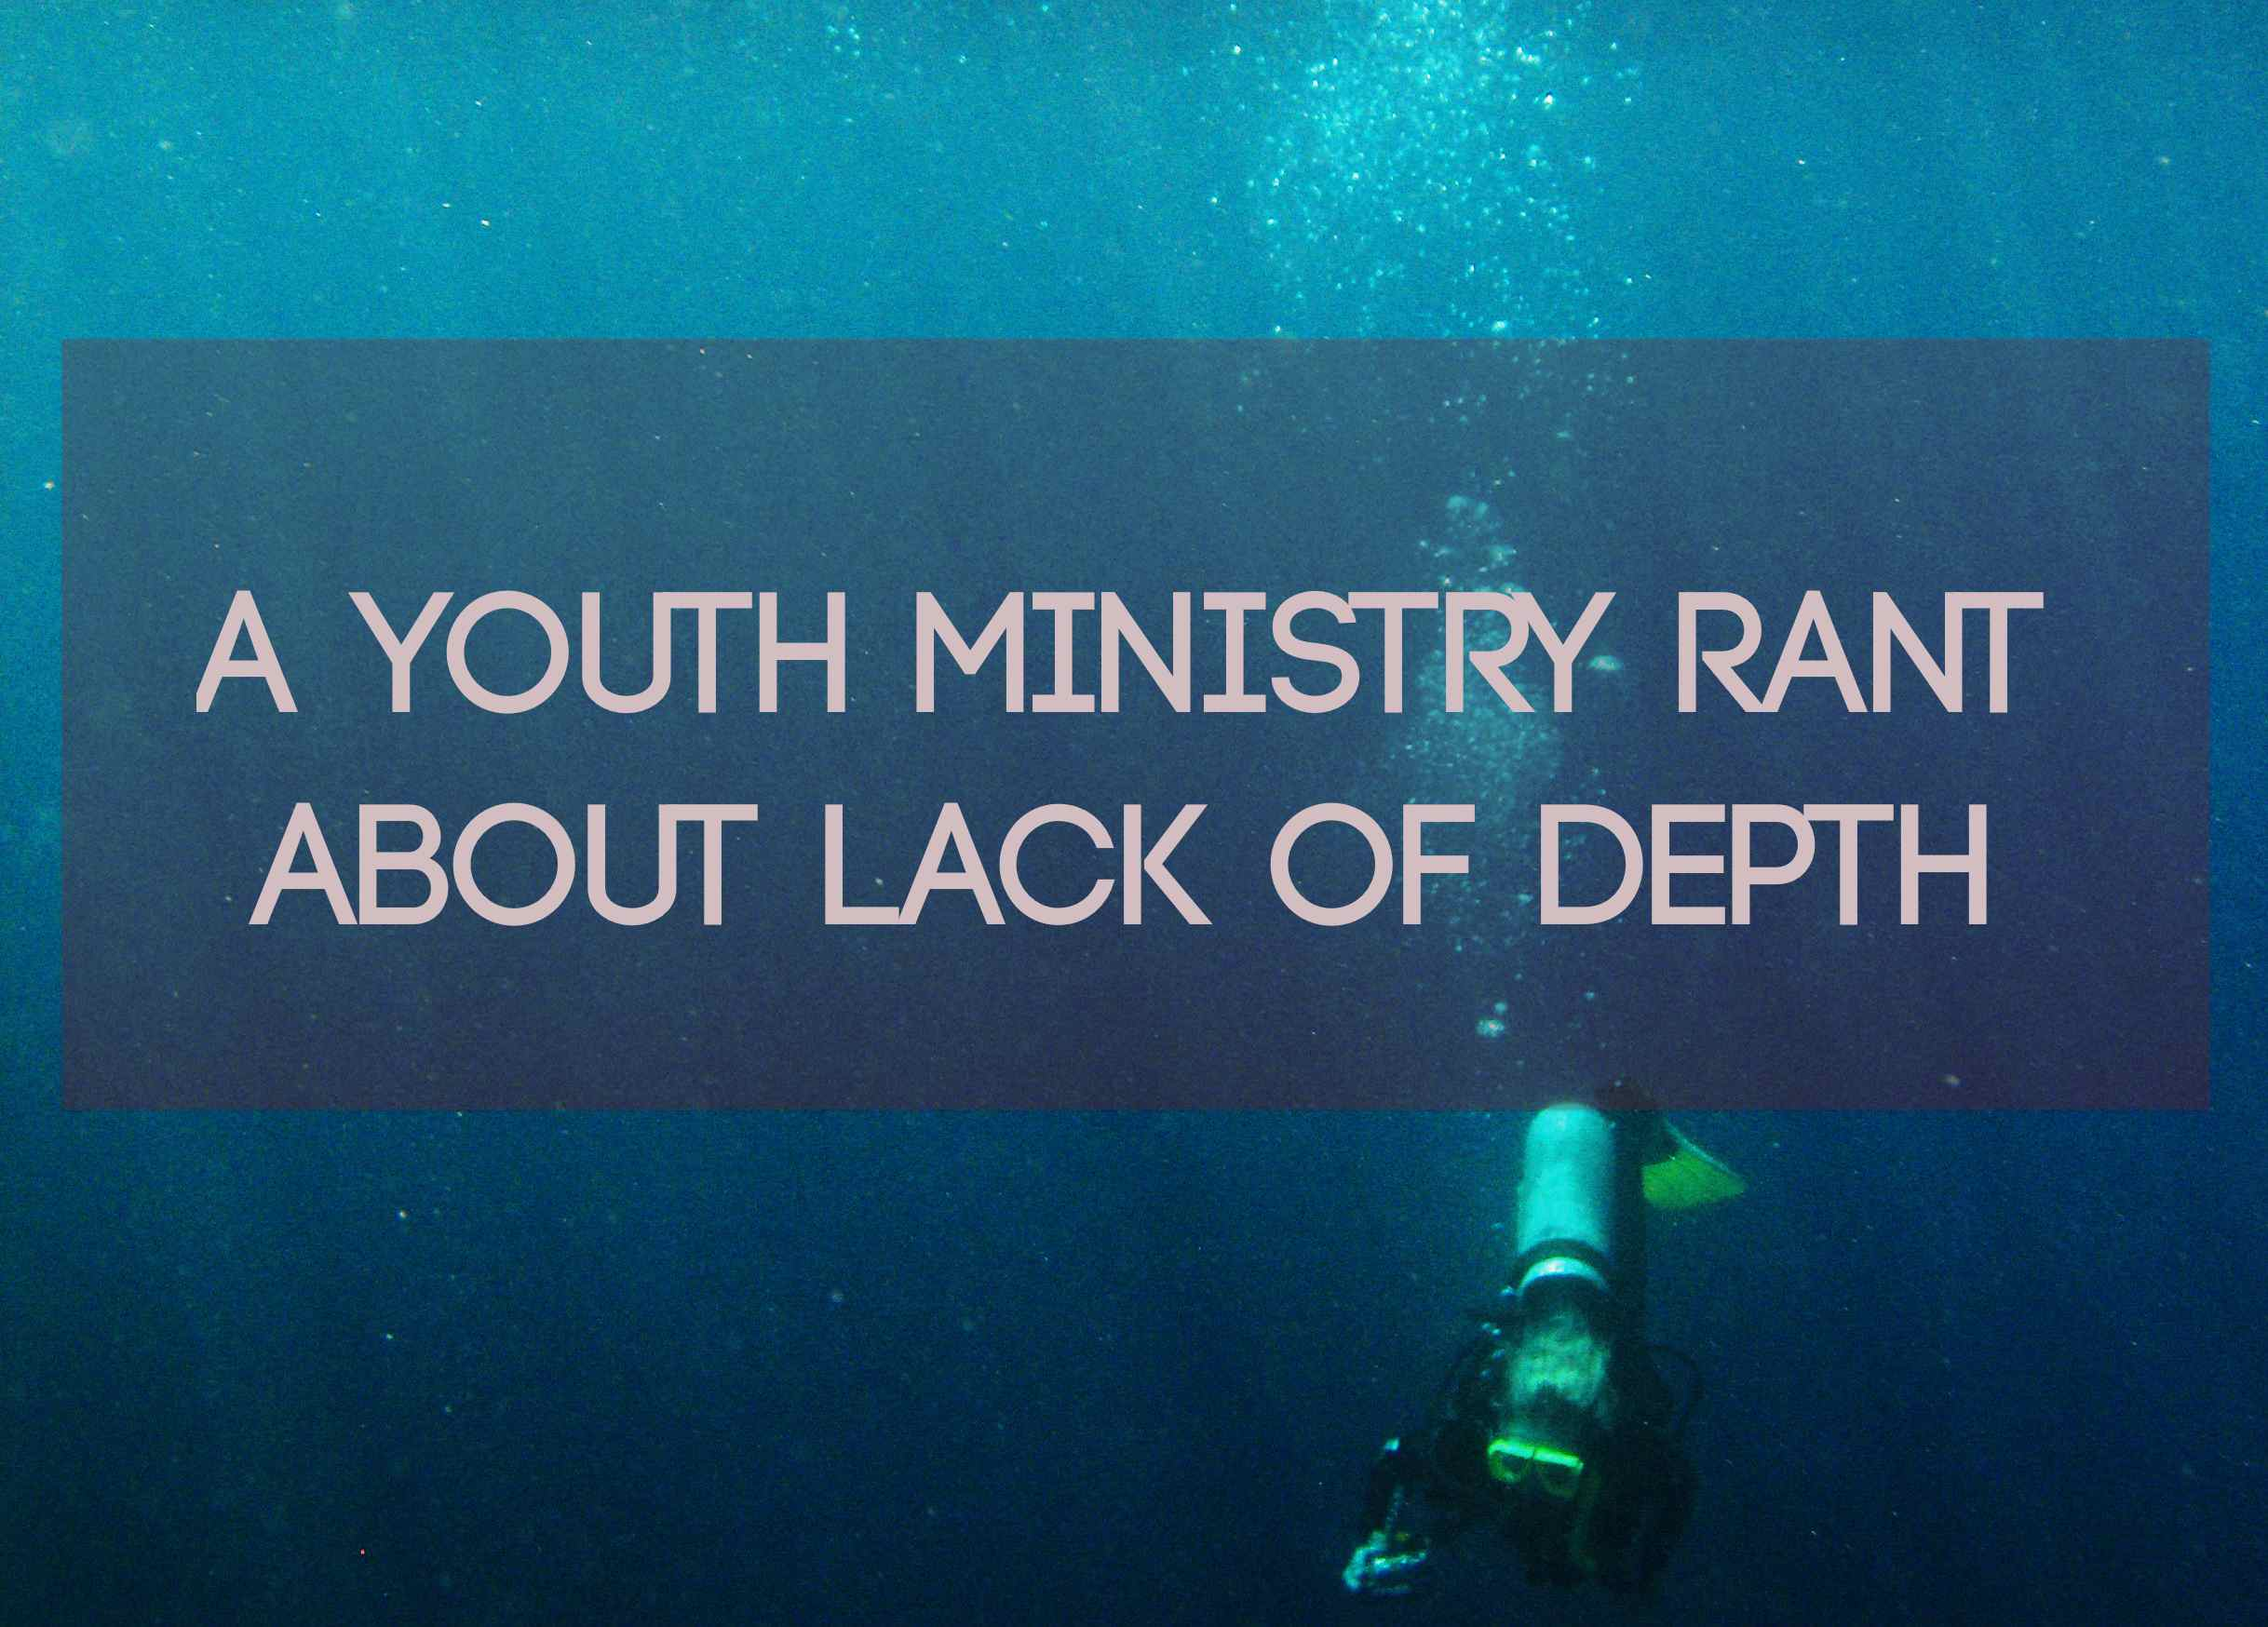 A Youth Ministry Rant about Lack of Depth